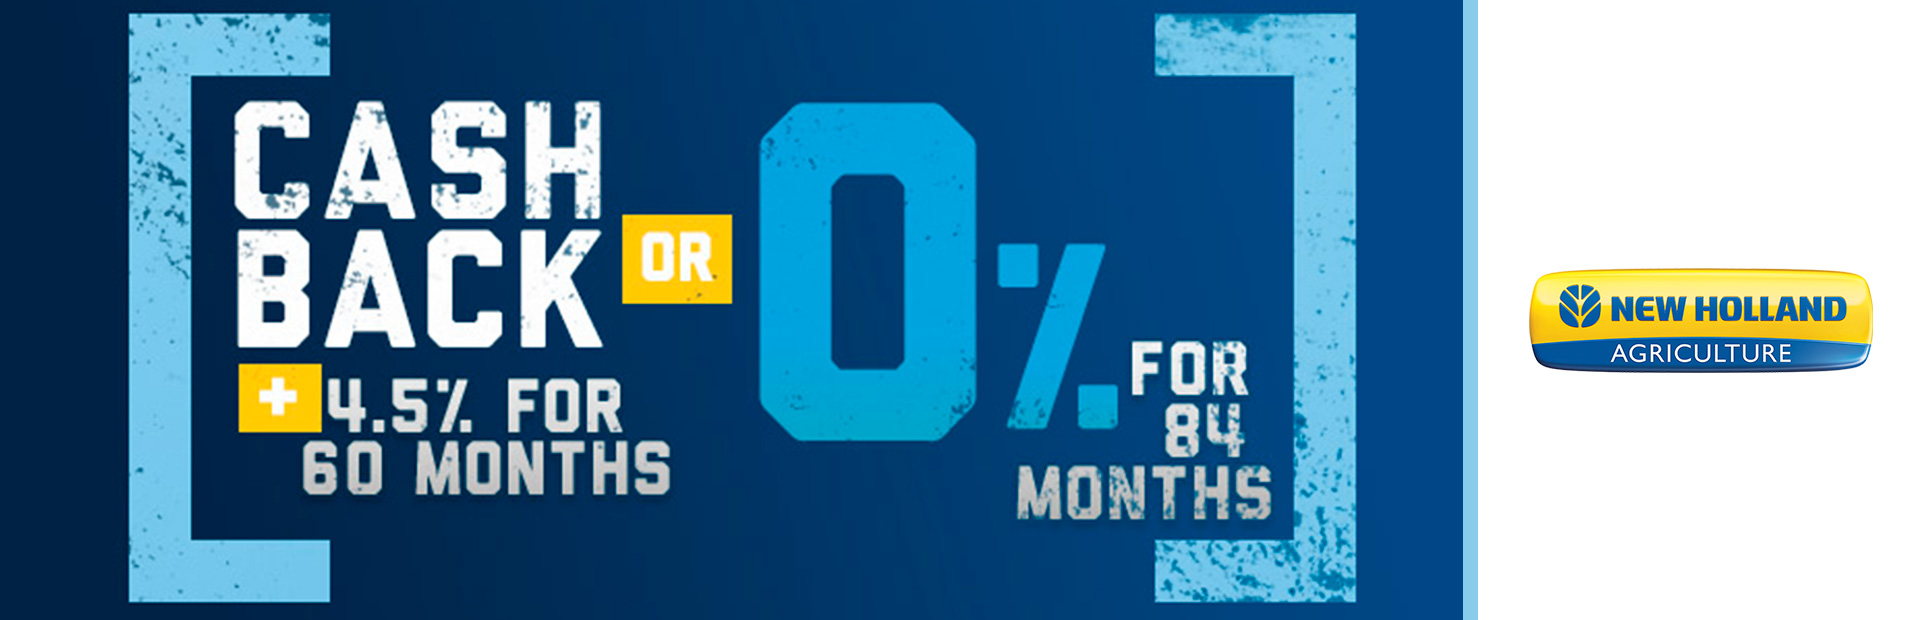 New Holland Agriculture: Cash Back PLUS 4.5% for 60 Months OR 0% for 84 Mon